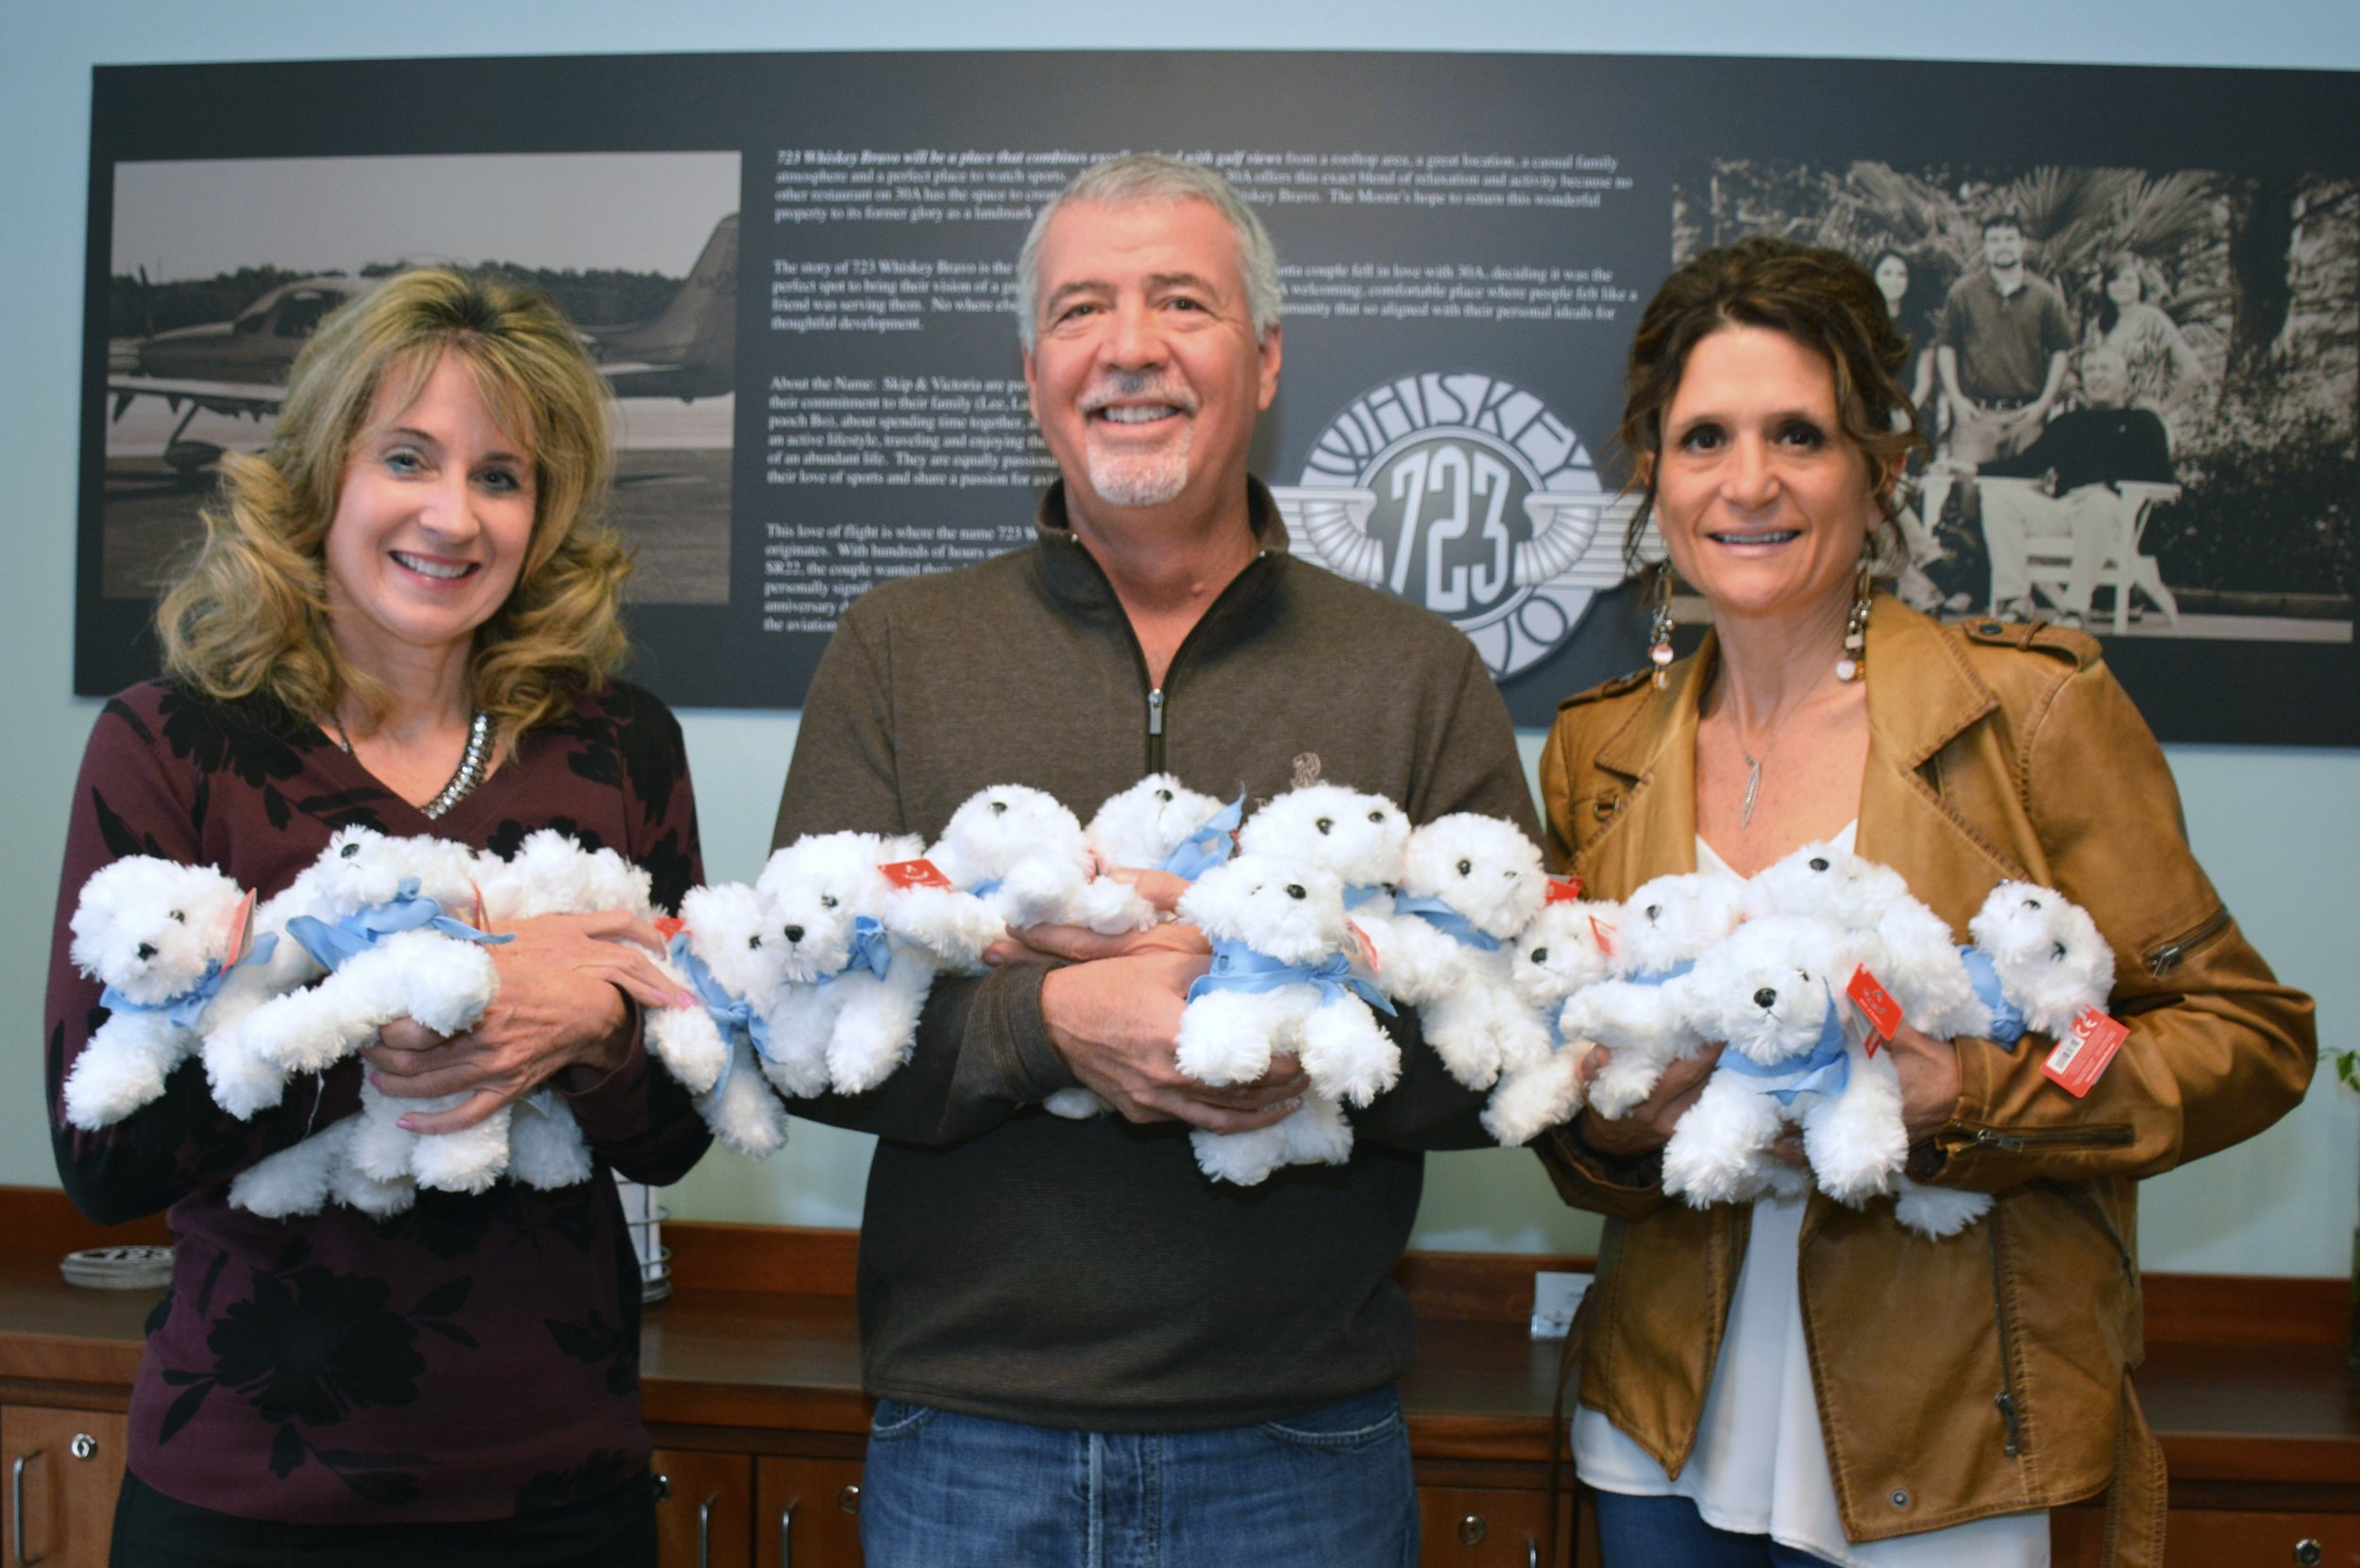 Benefitting ECCAC, the staff at 723 Whiskey Bravo restaurant in Seagrove Beach have successfully raised $44,869 in donations for stuffed animal Riley therapy dogs in the past three years. Pictured are ECCAC CEO, Julie Hurst-Porterfield and owners Skip and Victoria Moore.